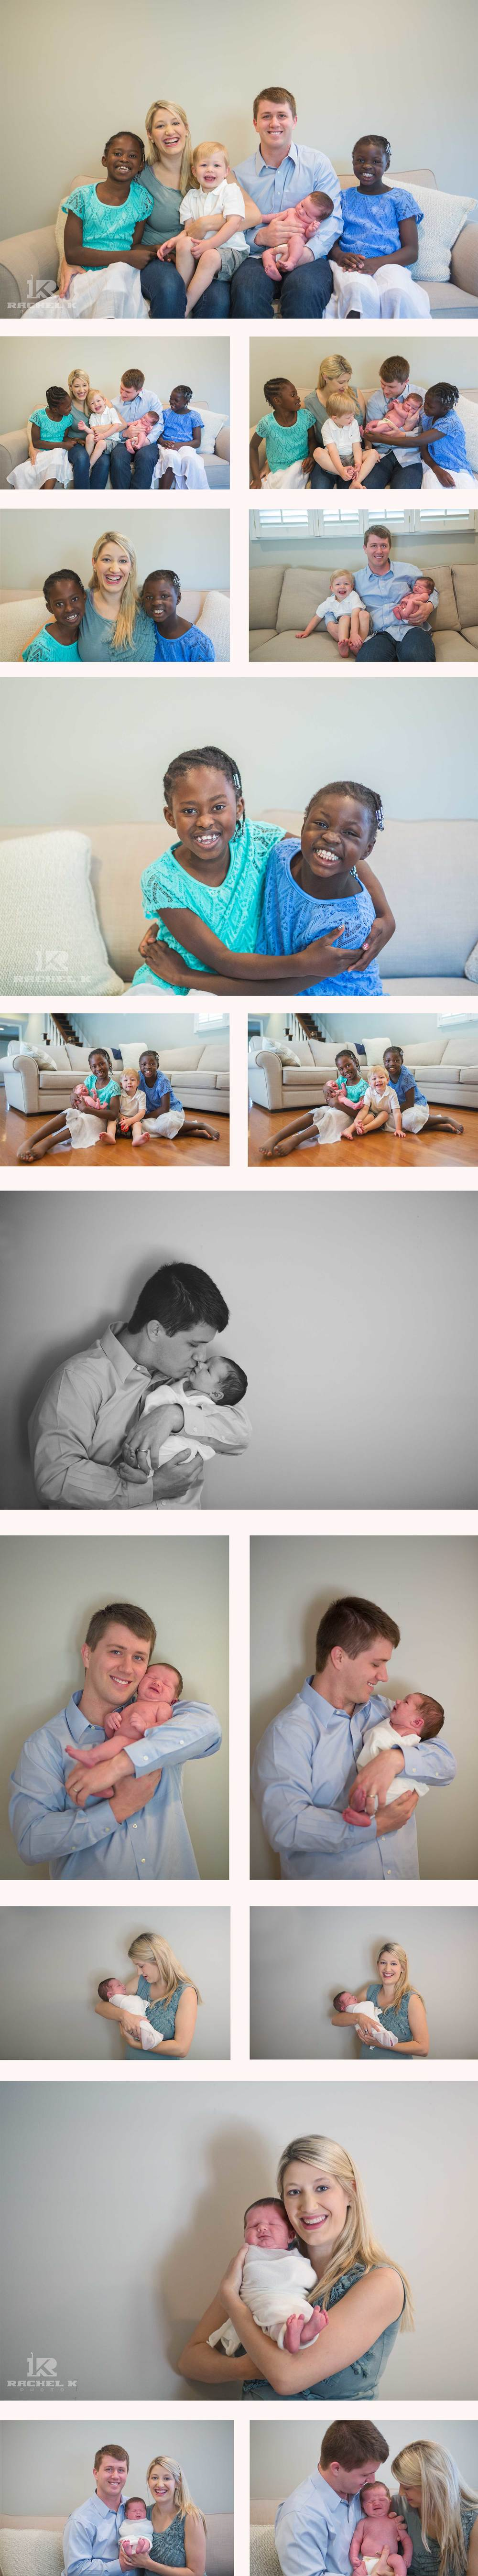 Arlington Virginia family lifestyle photography by Rachel K Photo